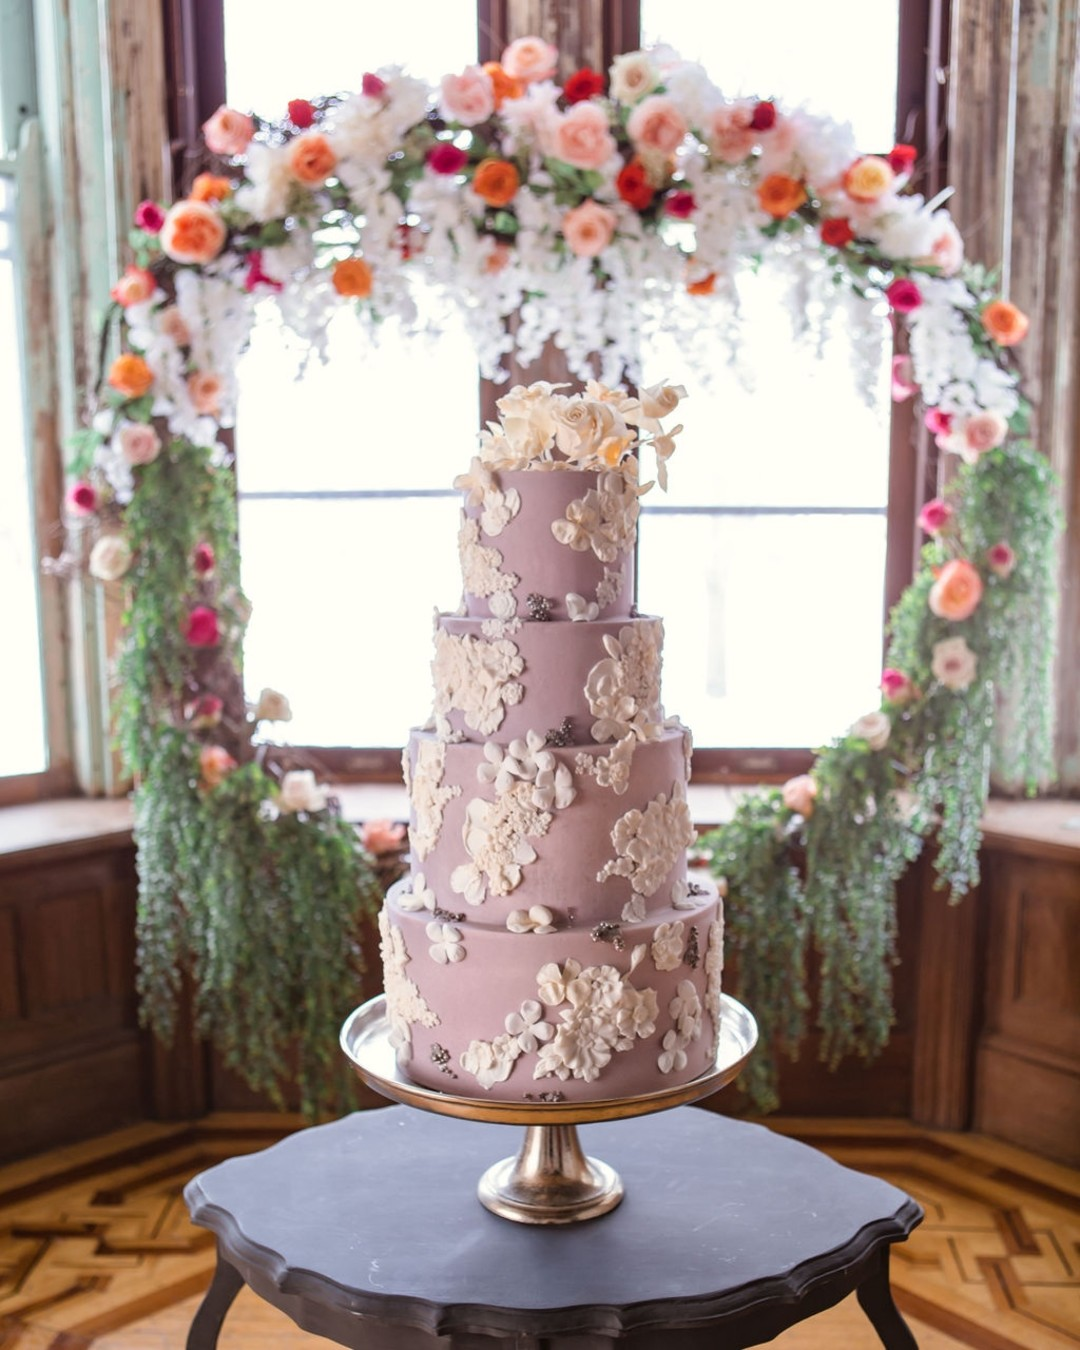 Floral wedding cake design: Bohemian wedding inspiration captured by Truly Sublime Photography. See more boho wedding ideas on CHItheeWED.com!